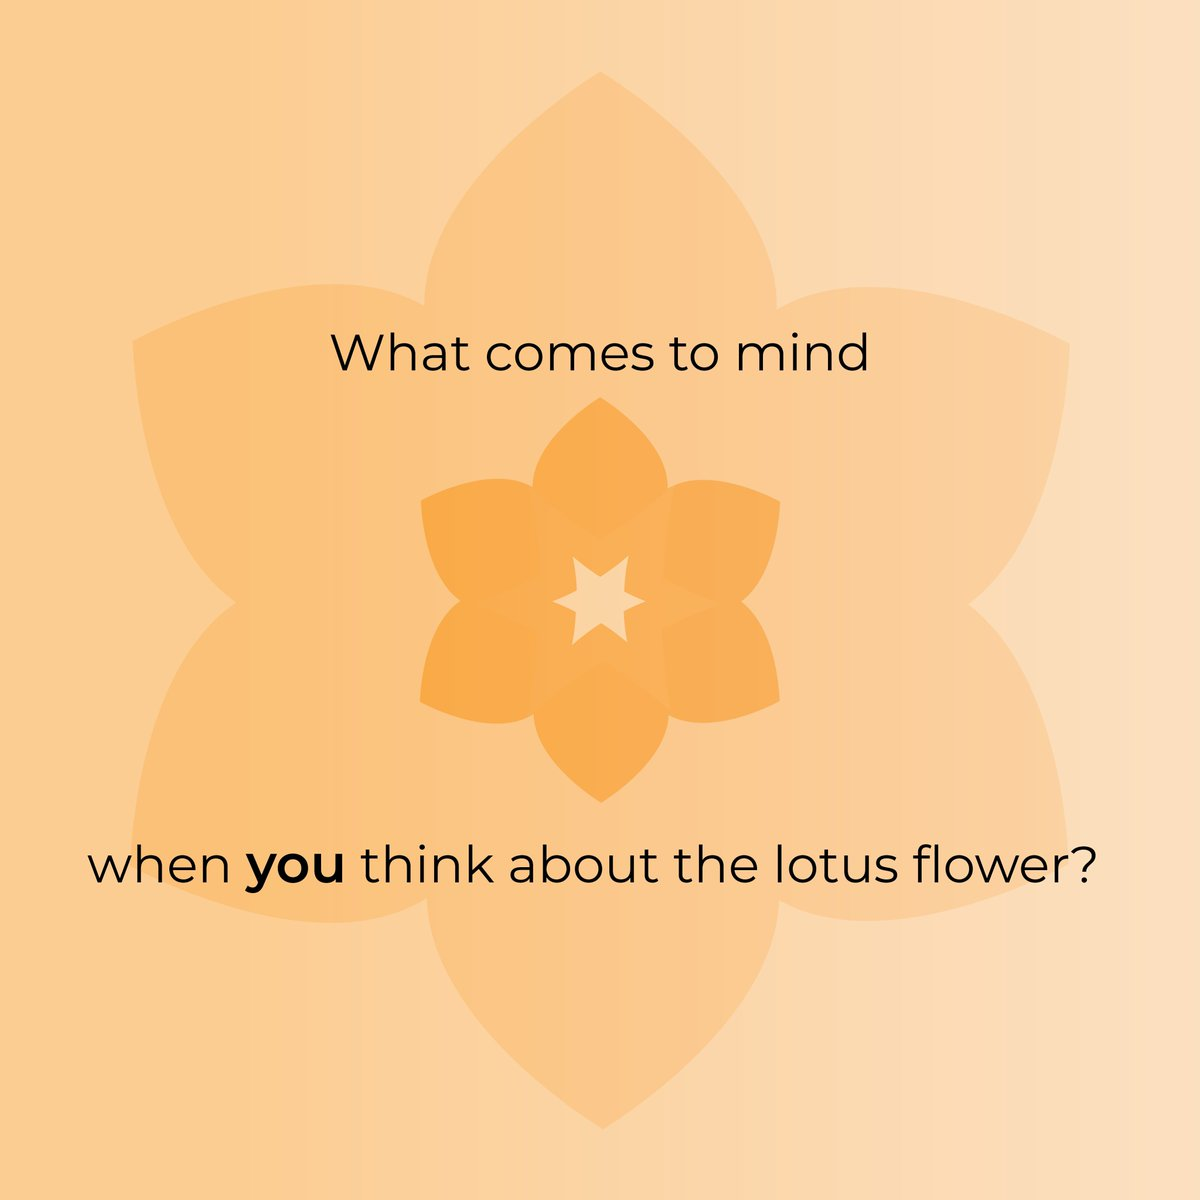 What comes to mind when you think about the #lotus flower? https://t.co/O5LZiorHaN